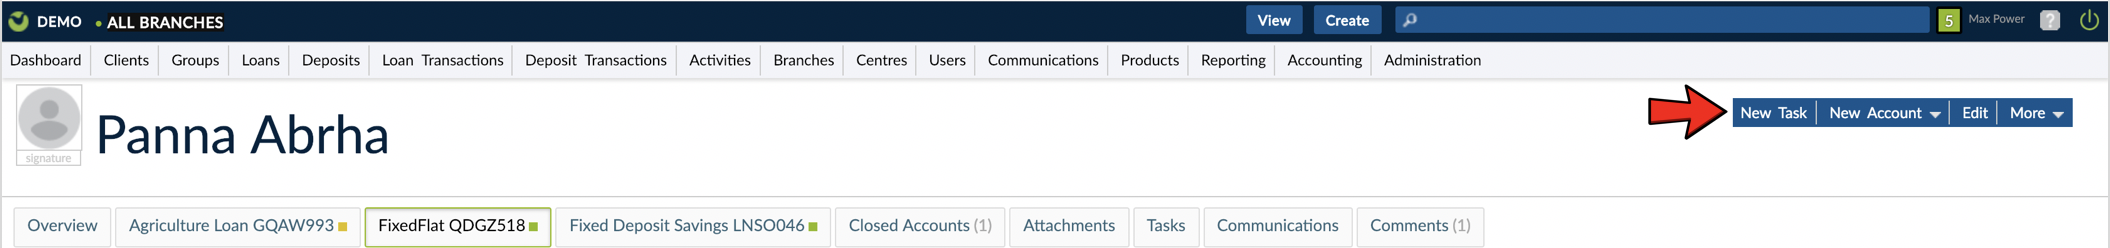 Create Task from Clients' profile